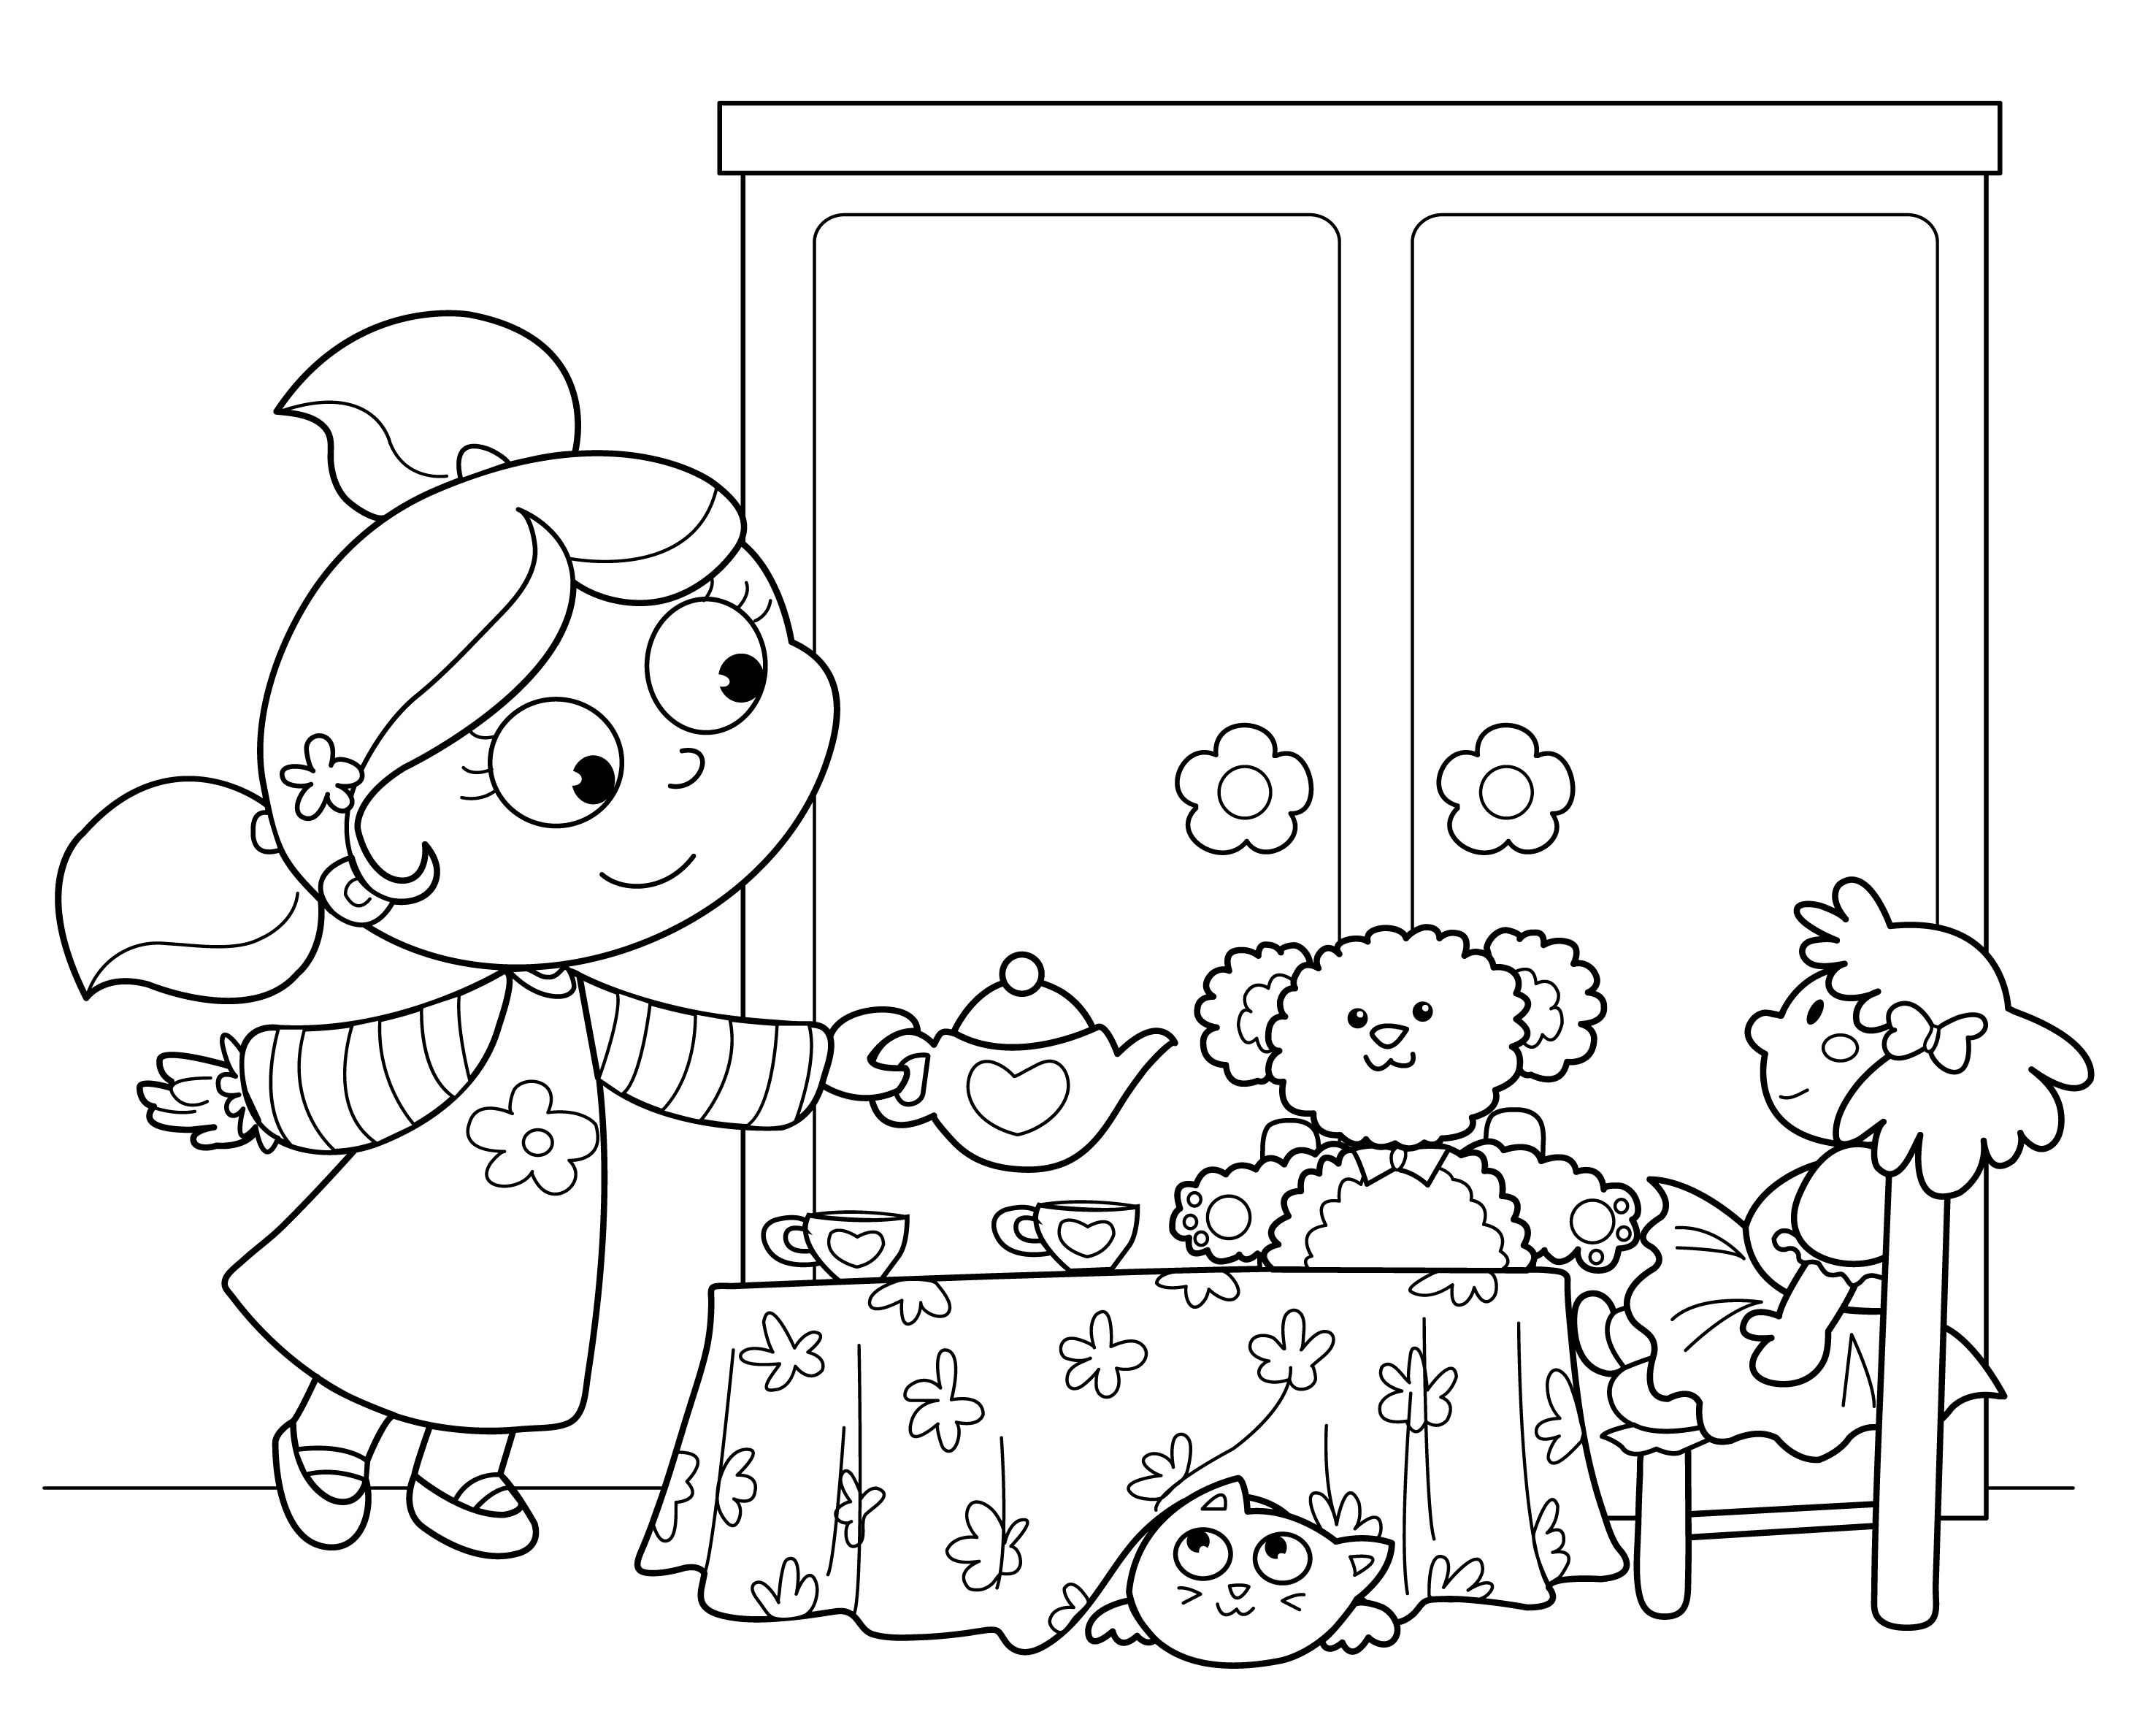 Tea party colouring pages